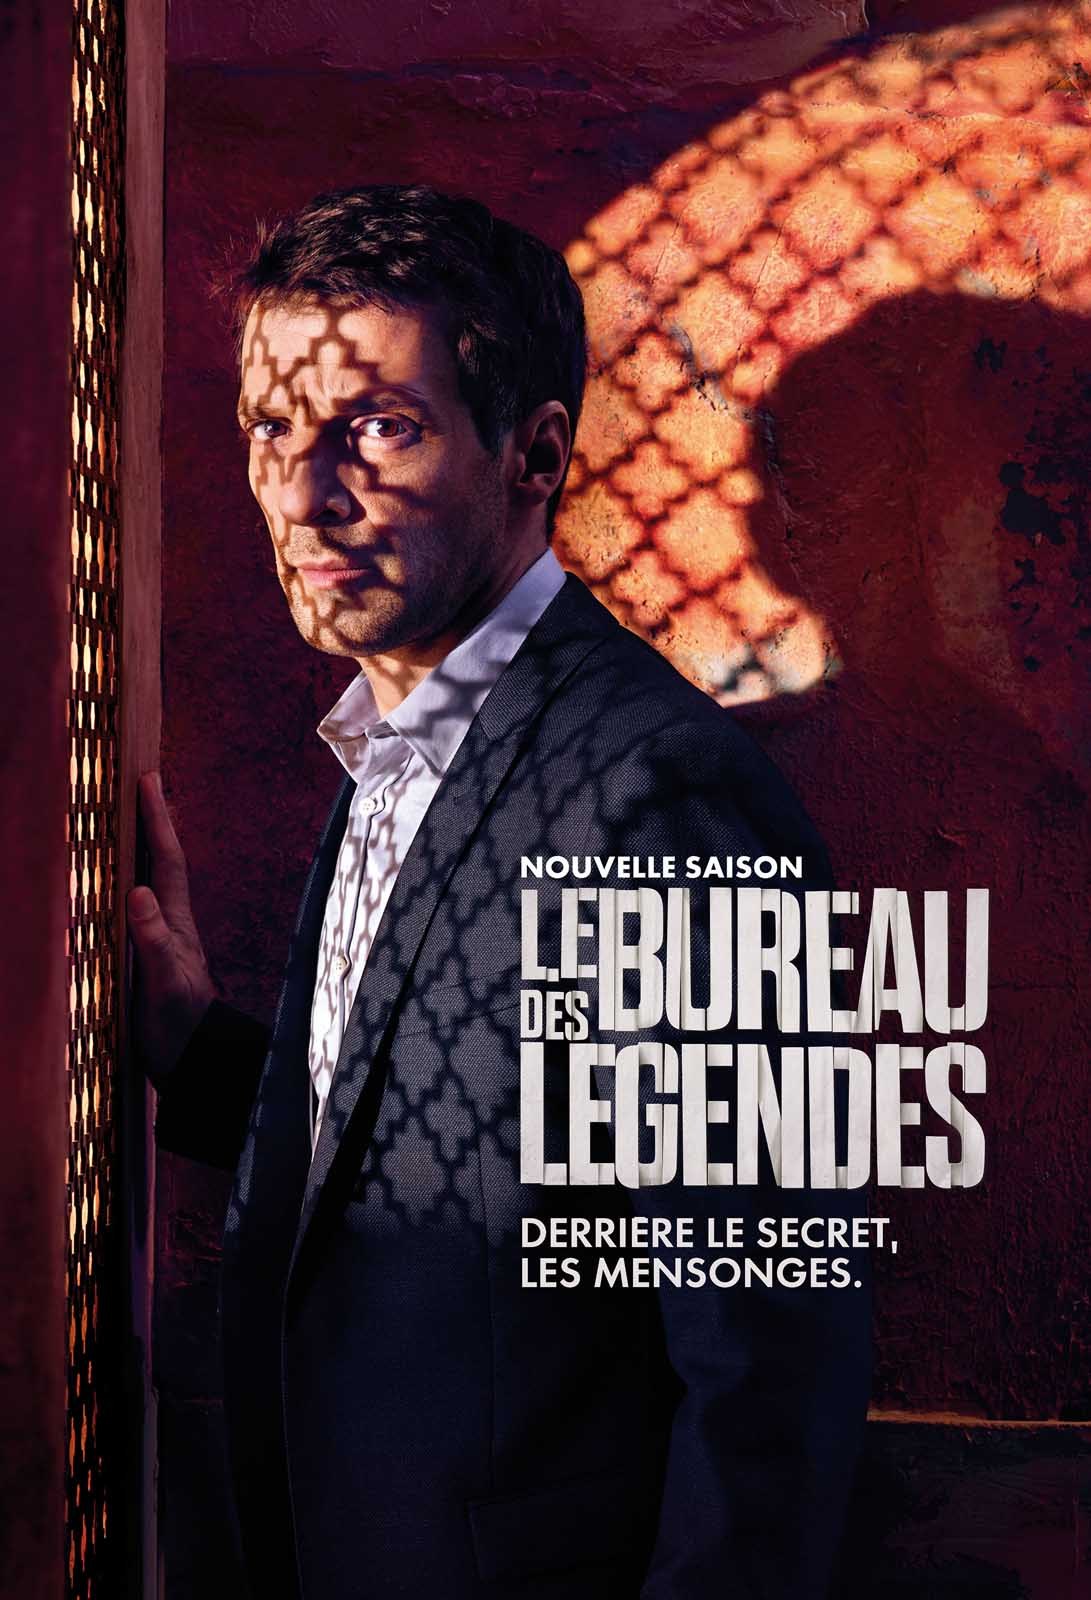 Le Bureau Des Legendes Saison 1 Streaming : bureau, legendes, saison, streaming, Bureau, Légendes, Saison, AlloCiné